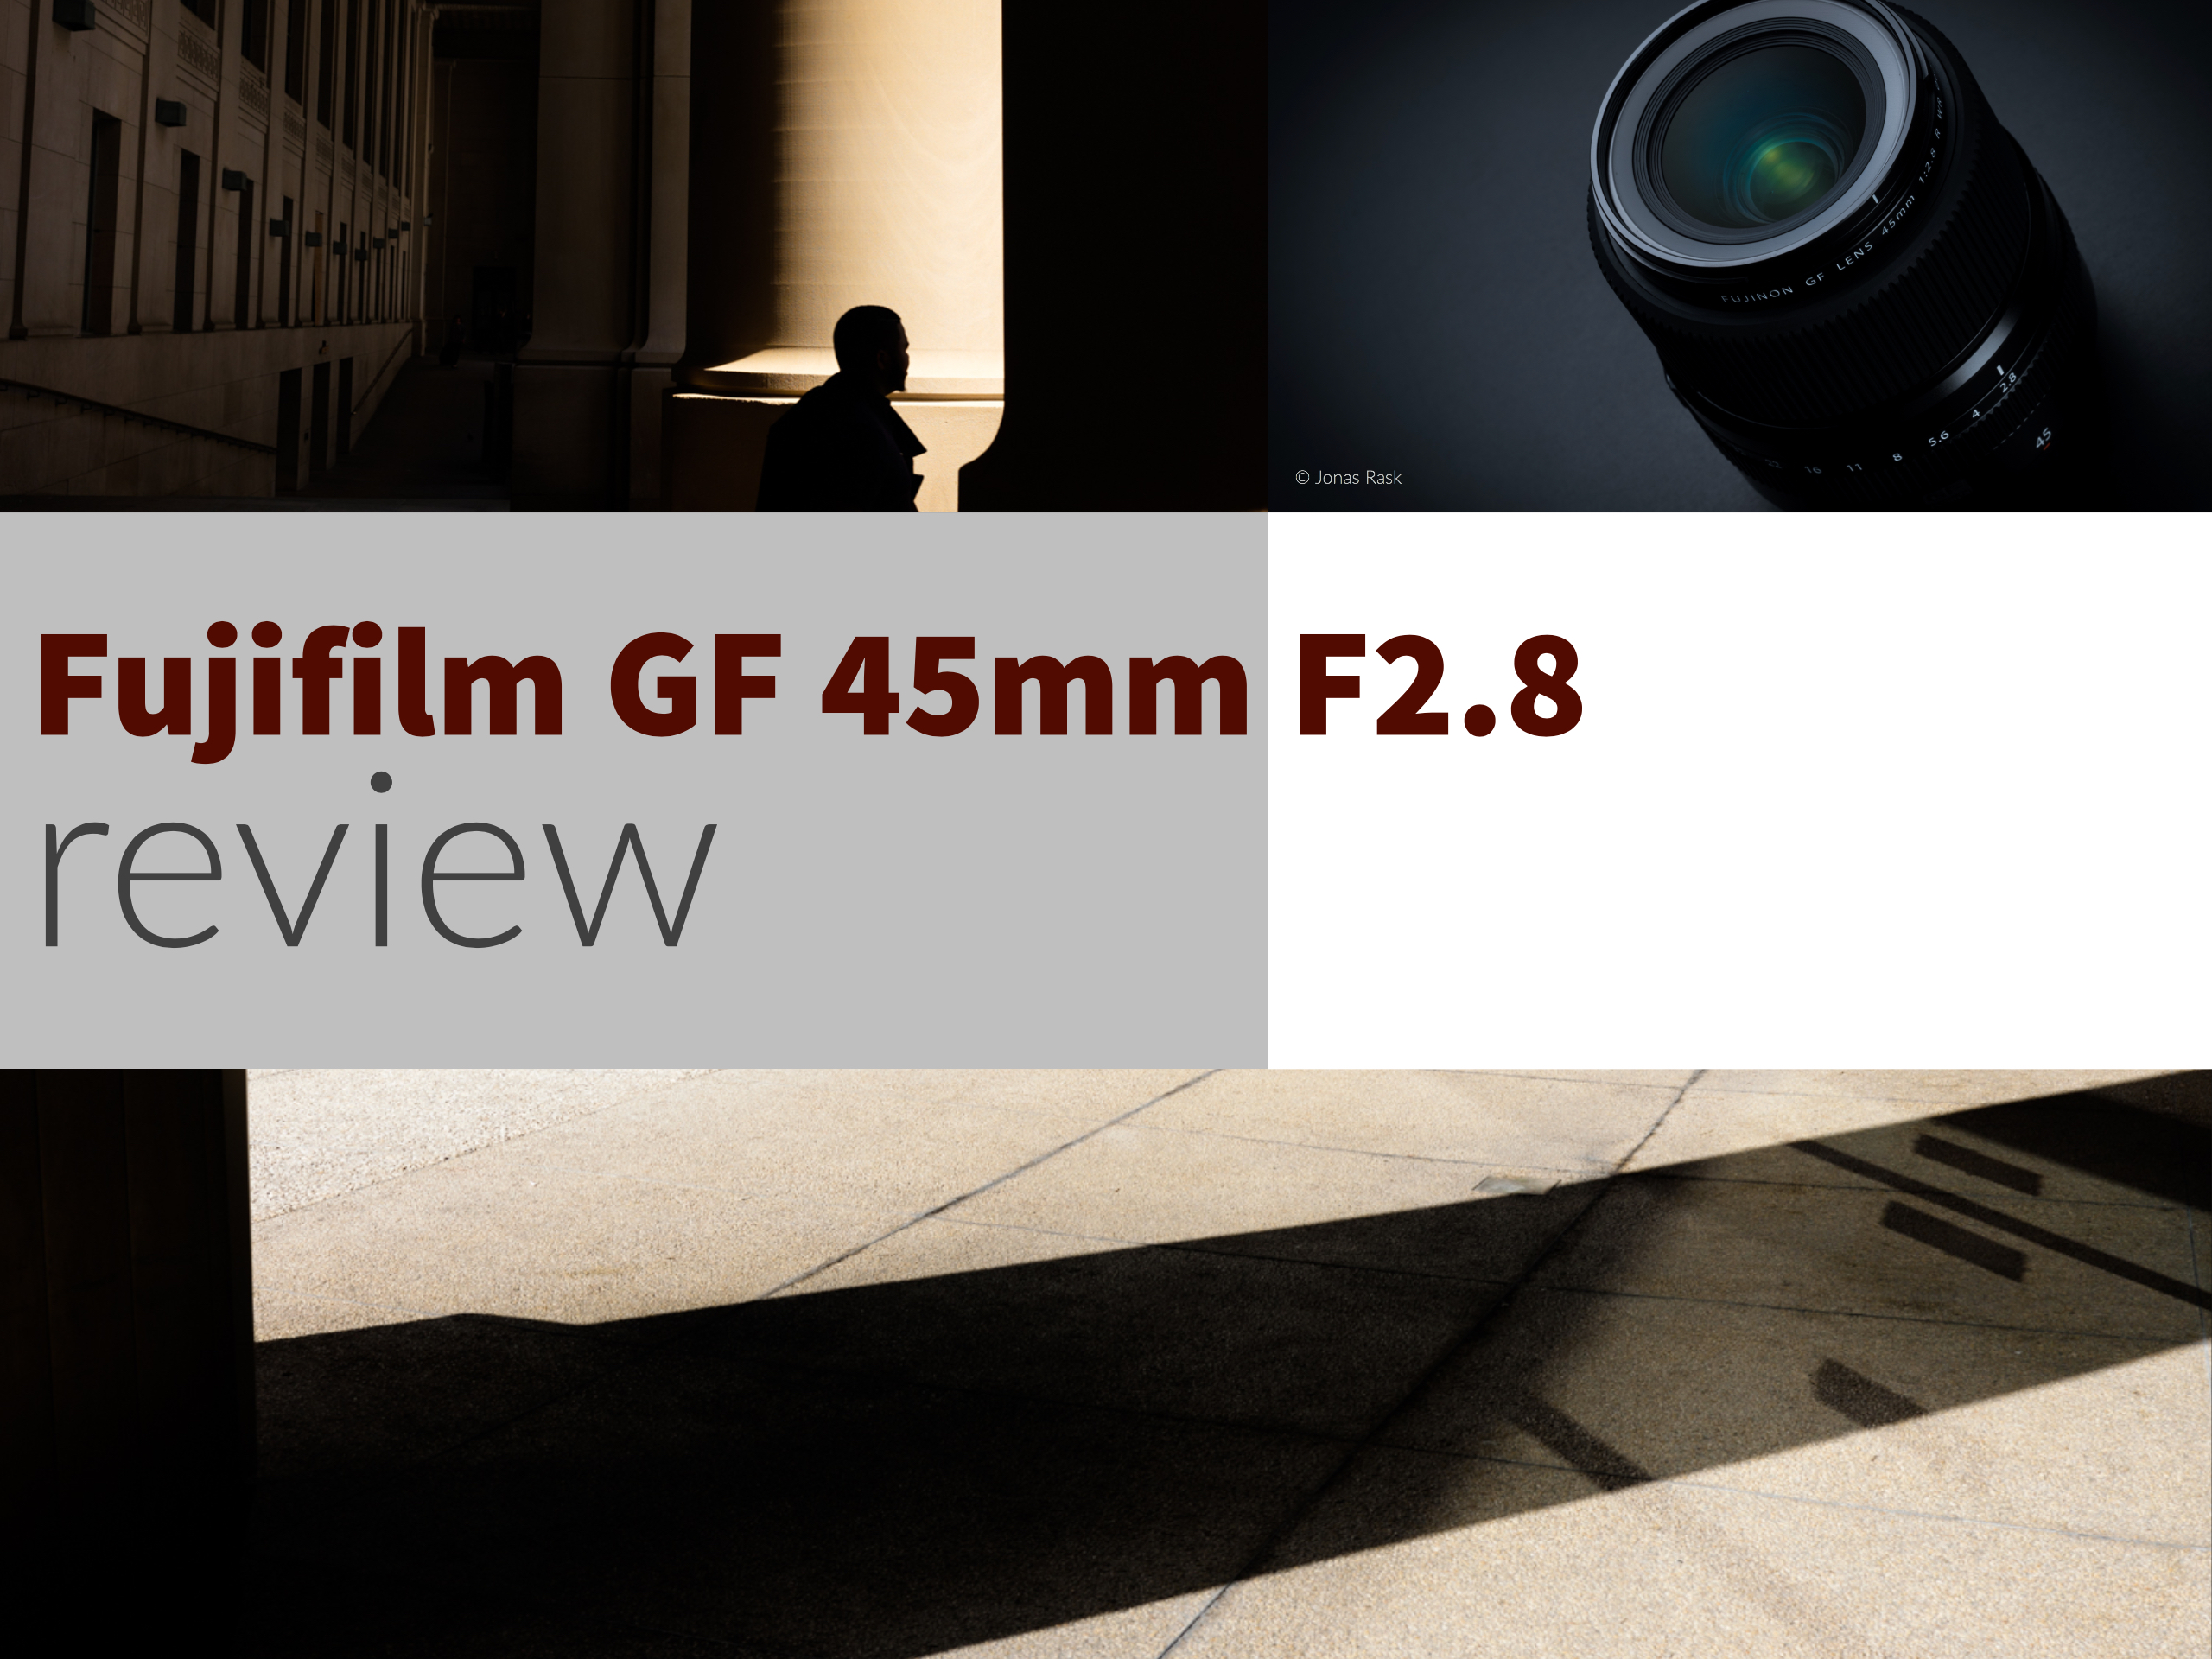 Fujifilm GF 45mm F2 8 lens review – Street Photography with